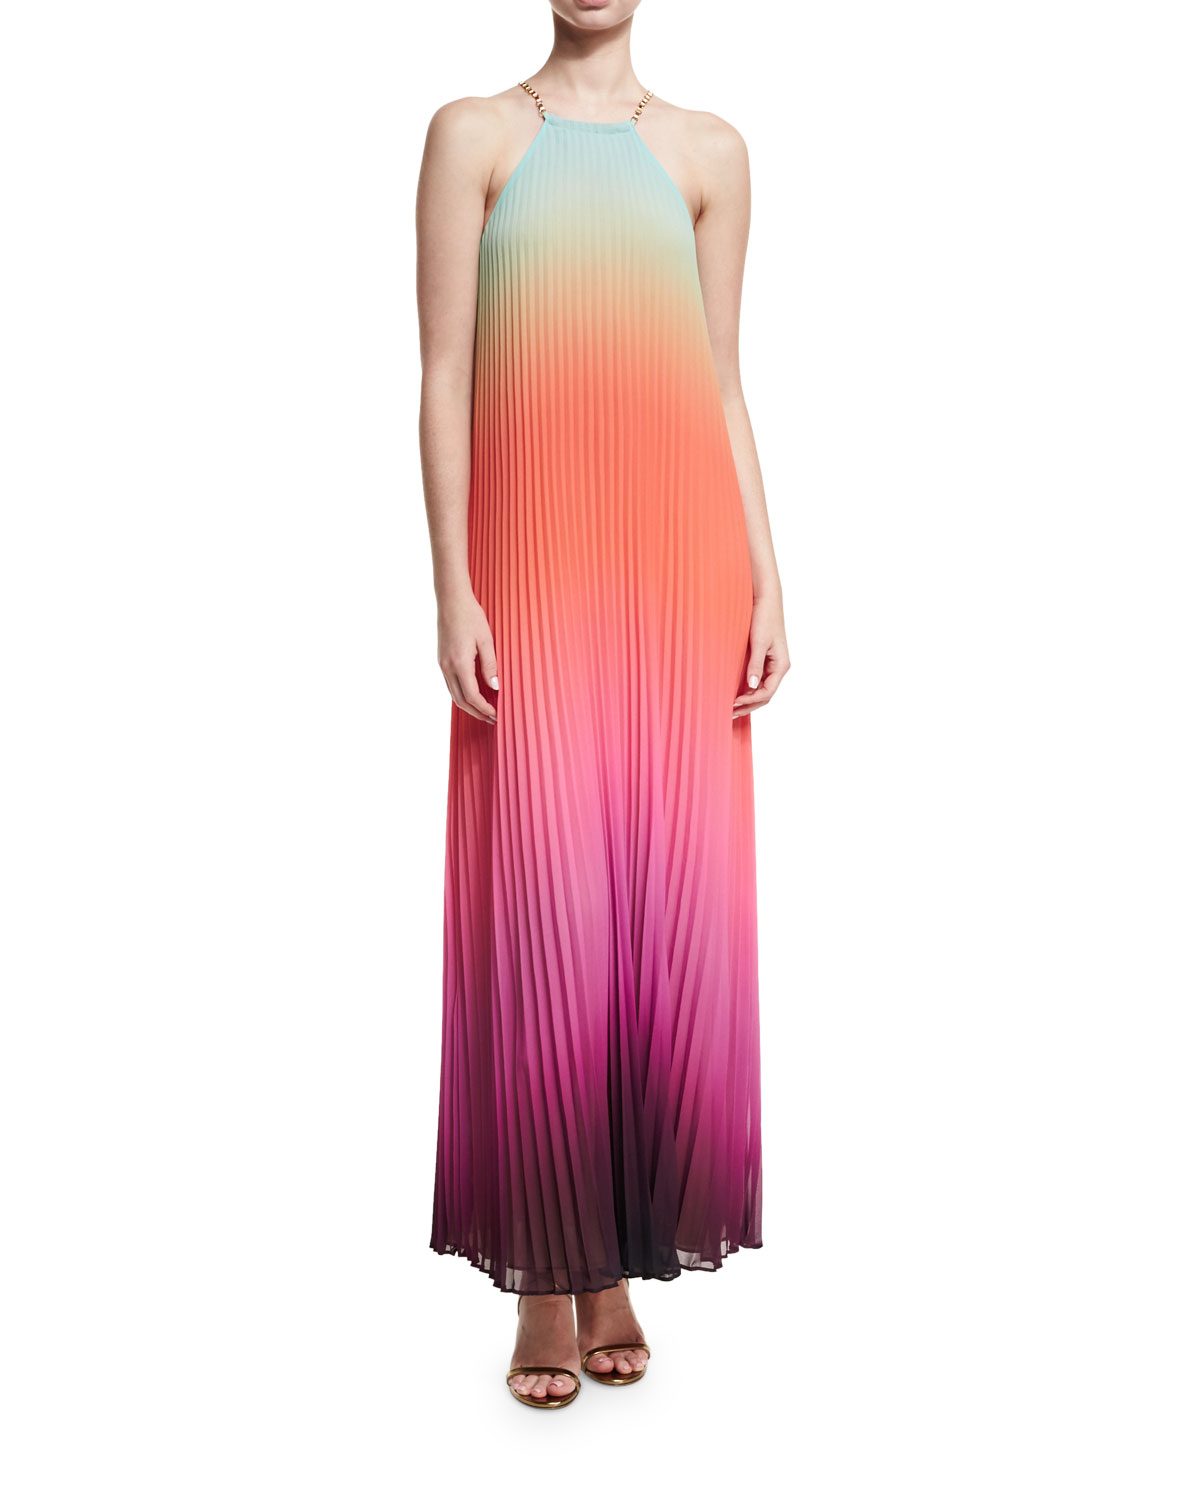 bc2a49fd729368 Trina Turk Sleeveless Halter Sunset Ombre Pleated Maxi Dress ...